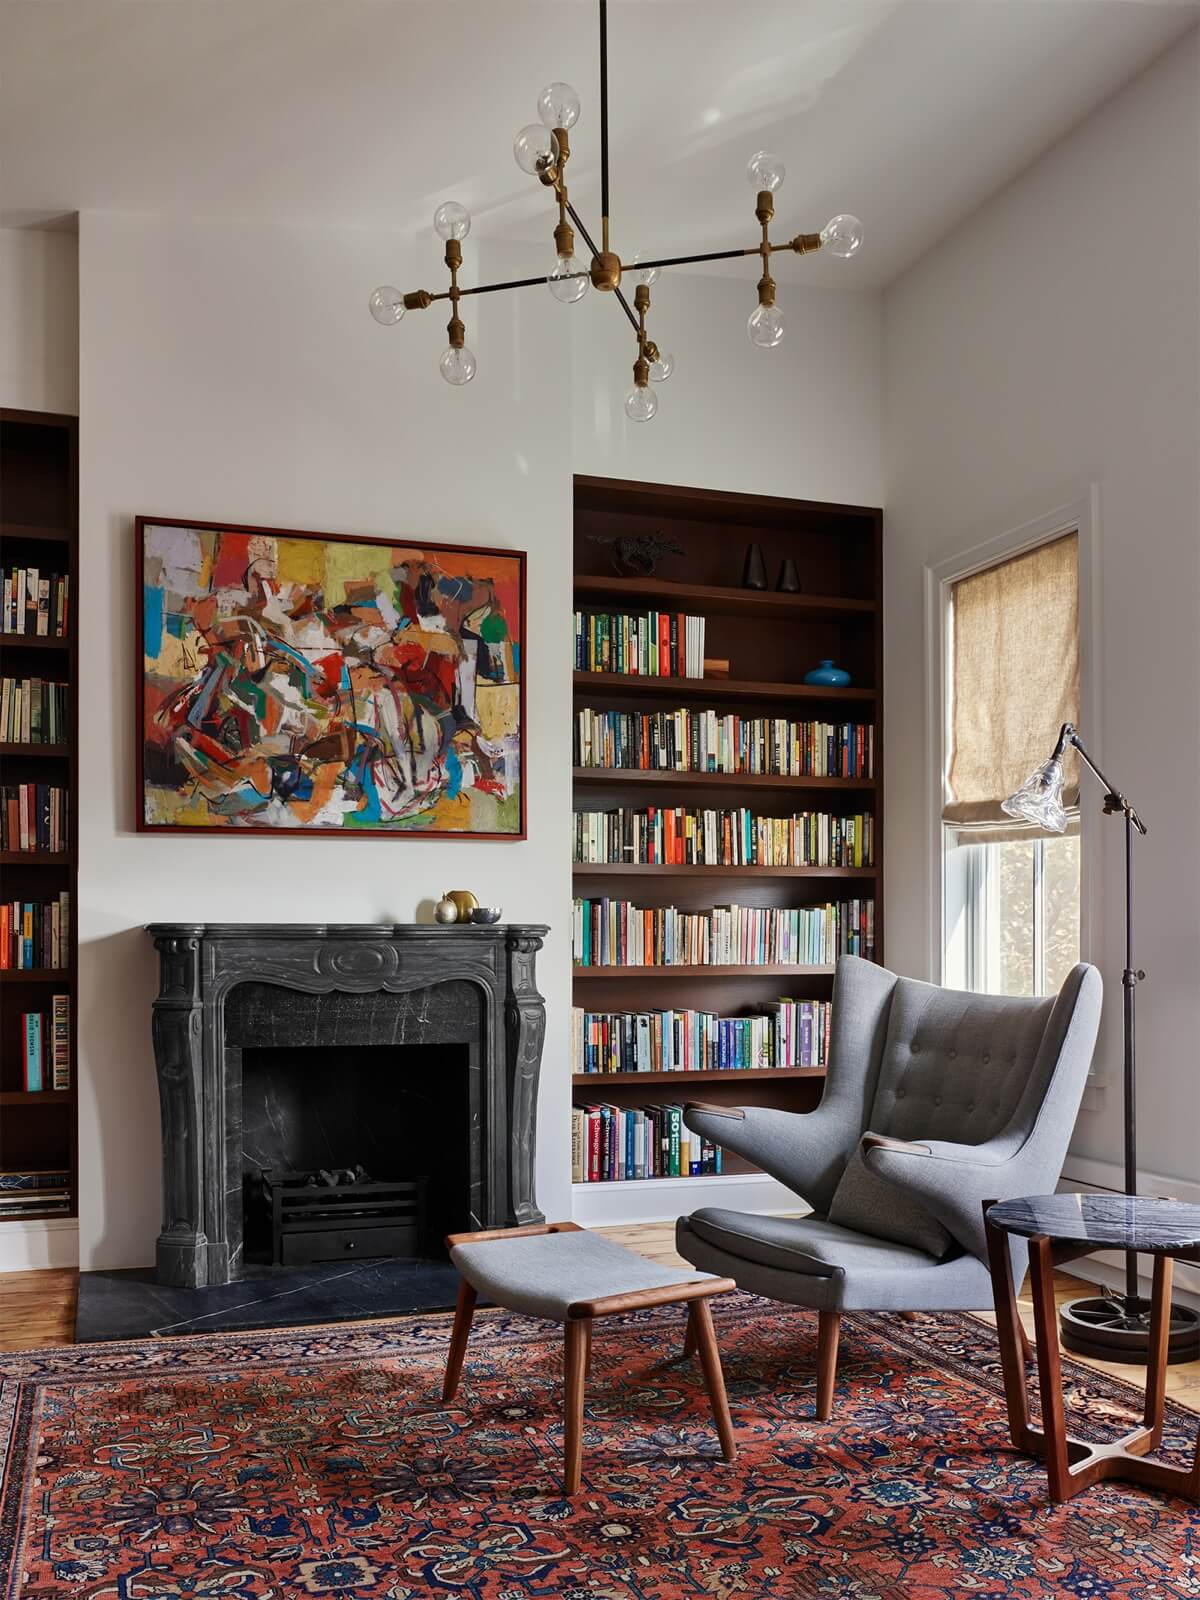 Interior Design Ideas Brooklyn Delson Sherman Greenpoint